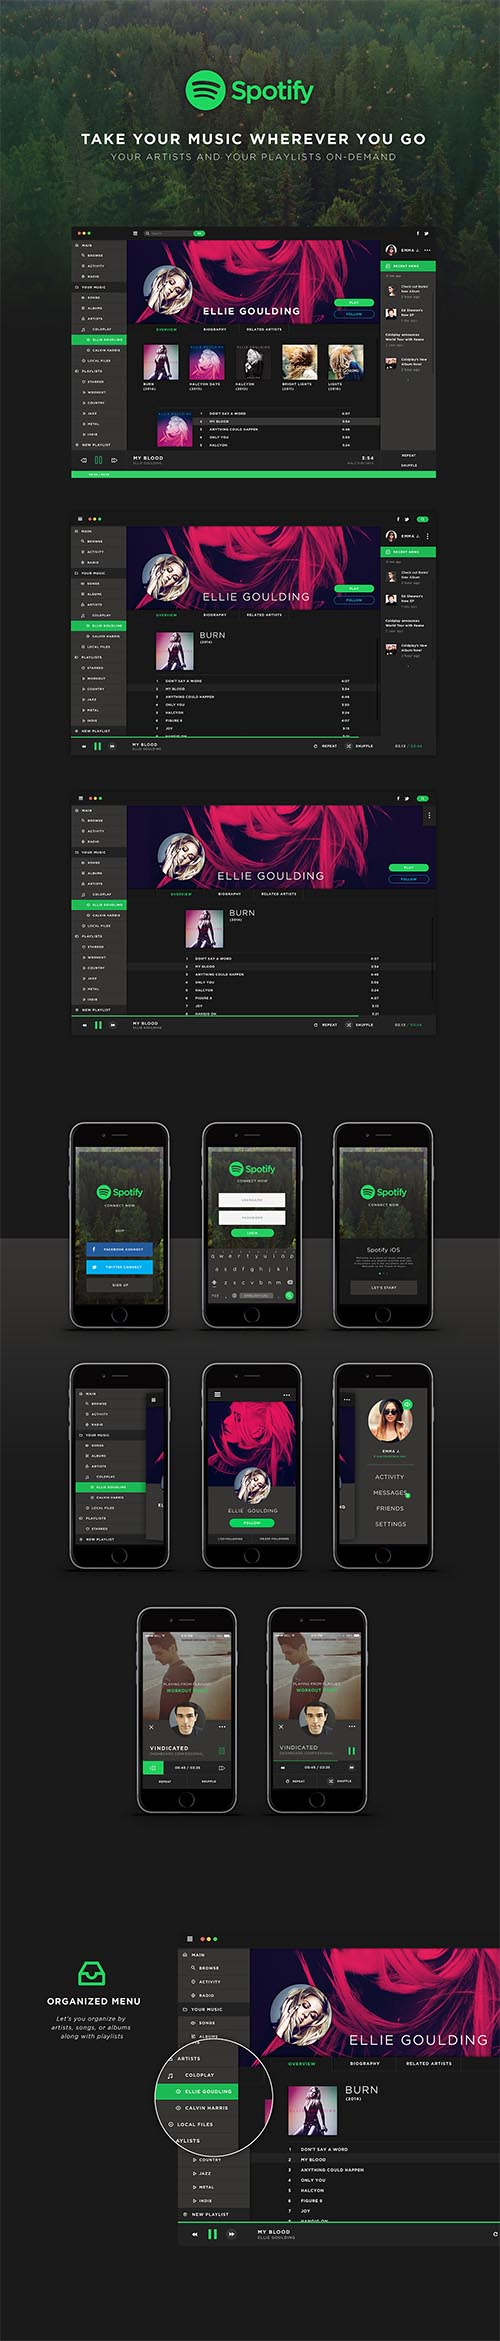 Spotify UI Redesign